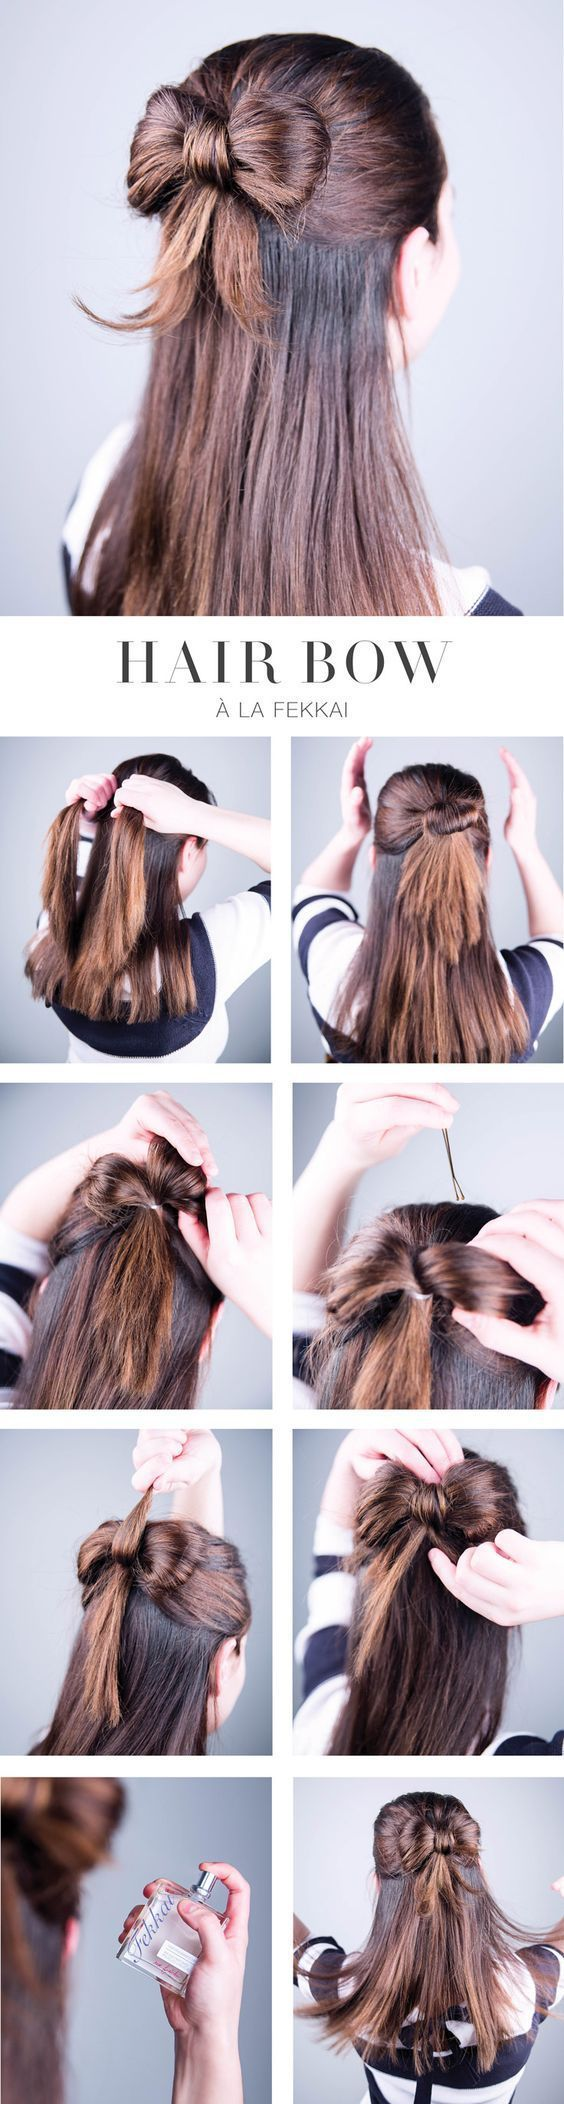 Cute easy hairstyles that kids can do - 8 Festive Girls Christmas Hair Style Ideas With Tutorials